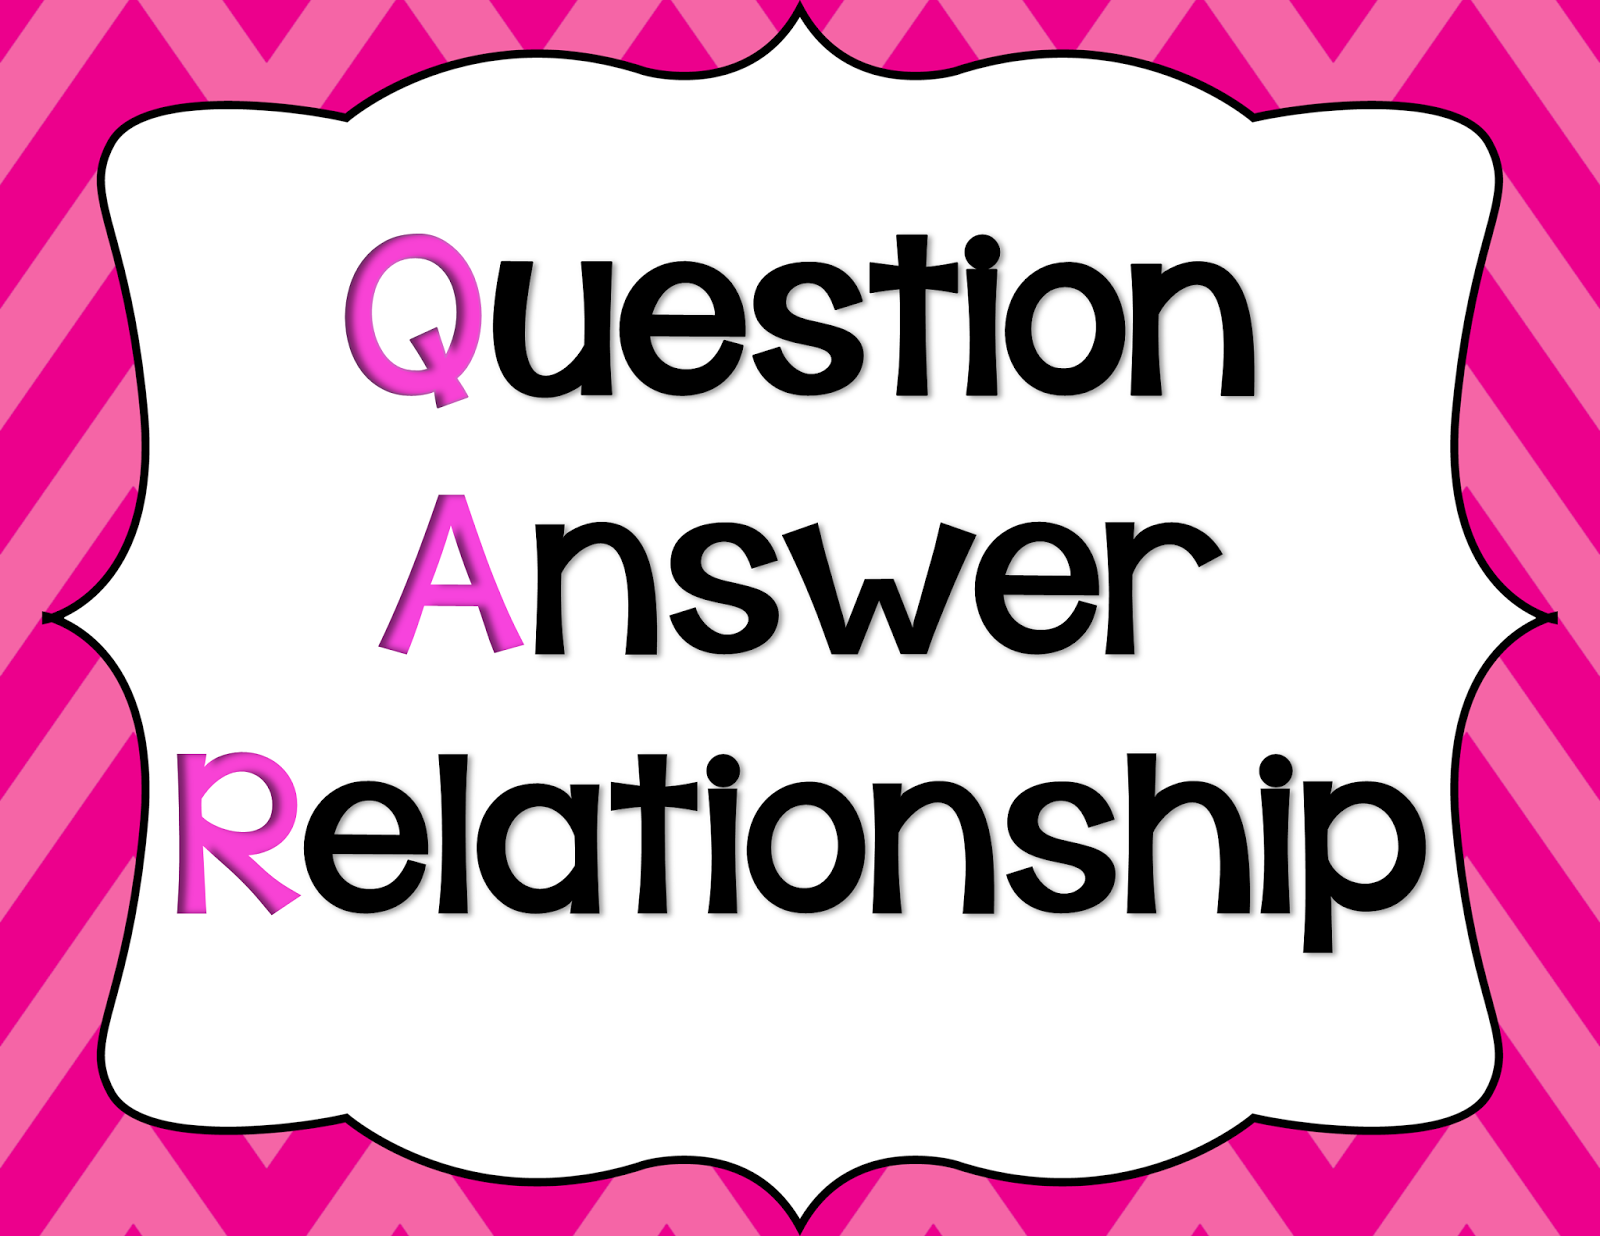 http://www.teacherspayteachers.com/Product/QAR-Question-Answer-Relationship-17-anchor-charts-bookmarks-question-sort-1045098